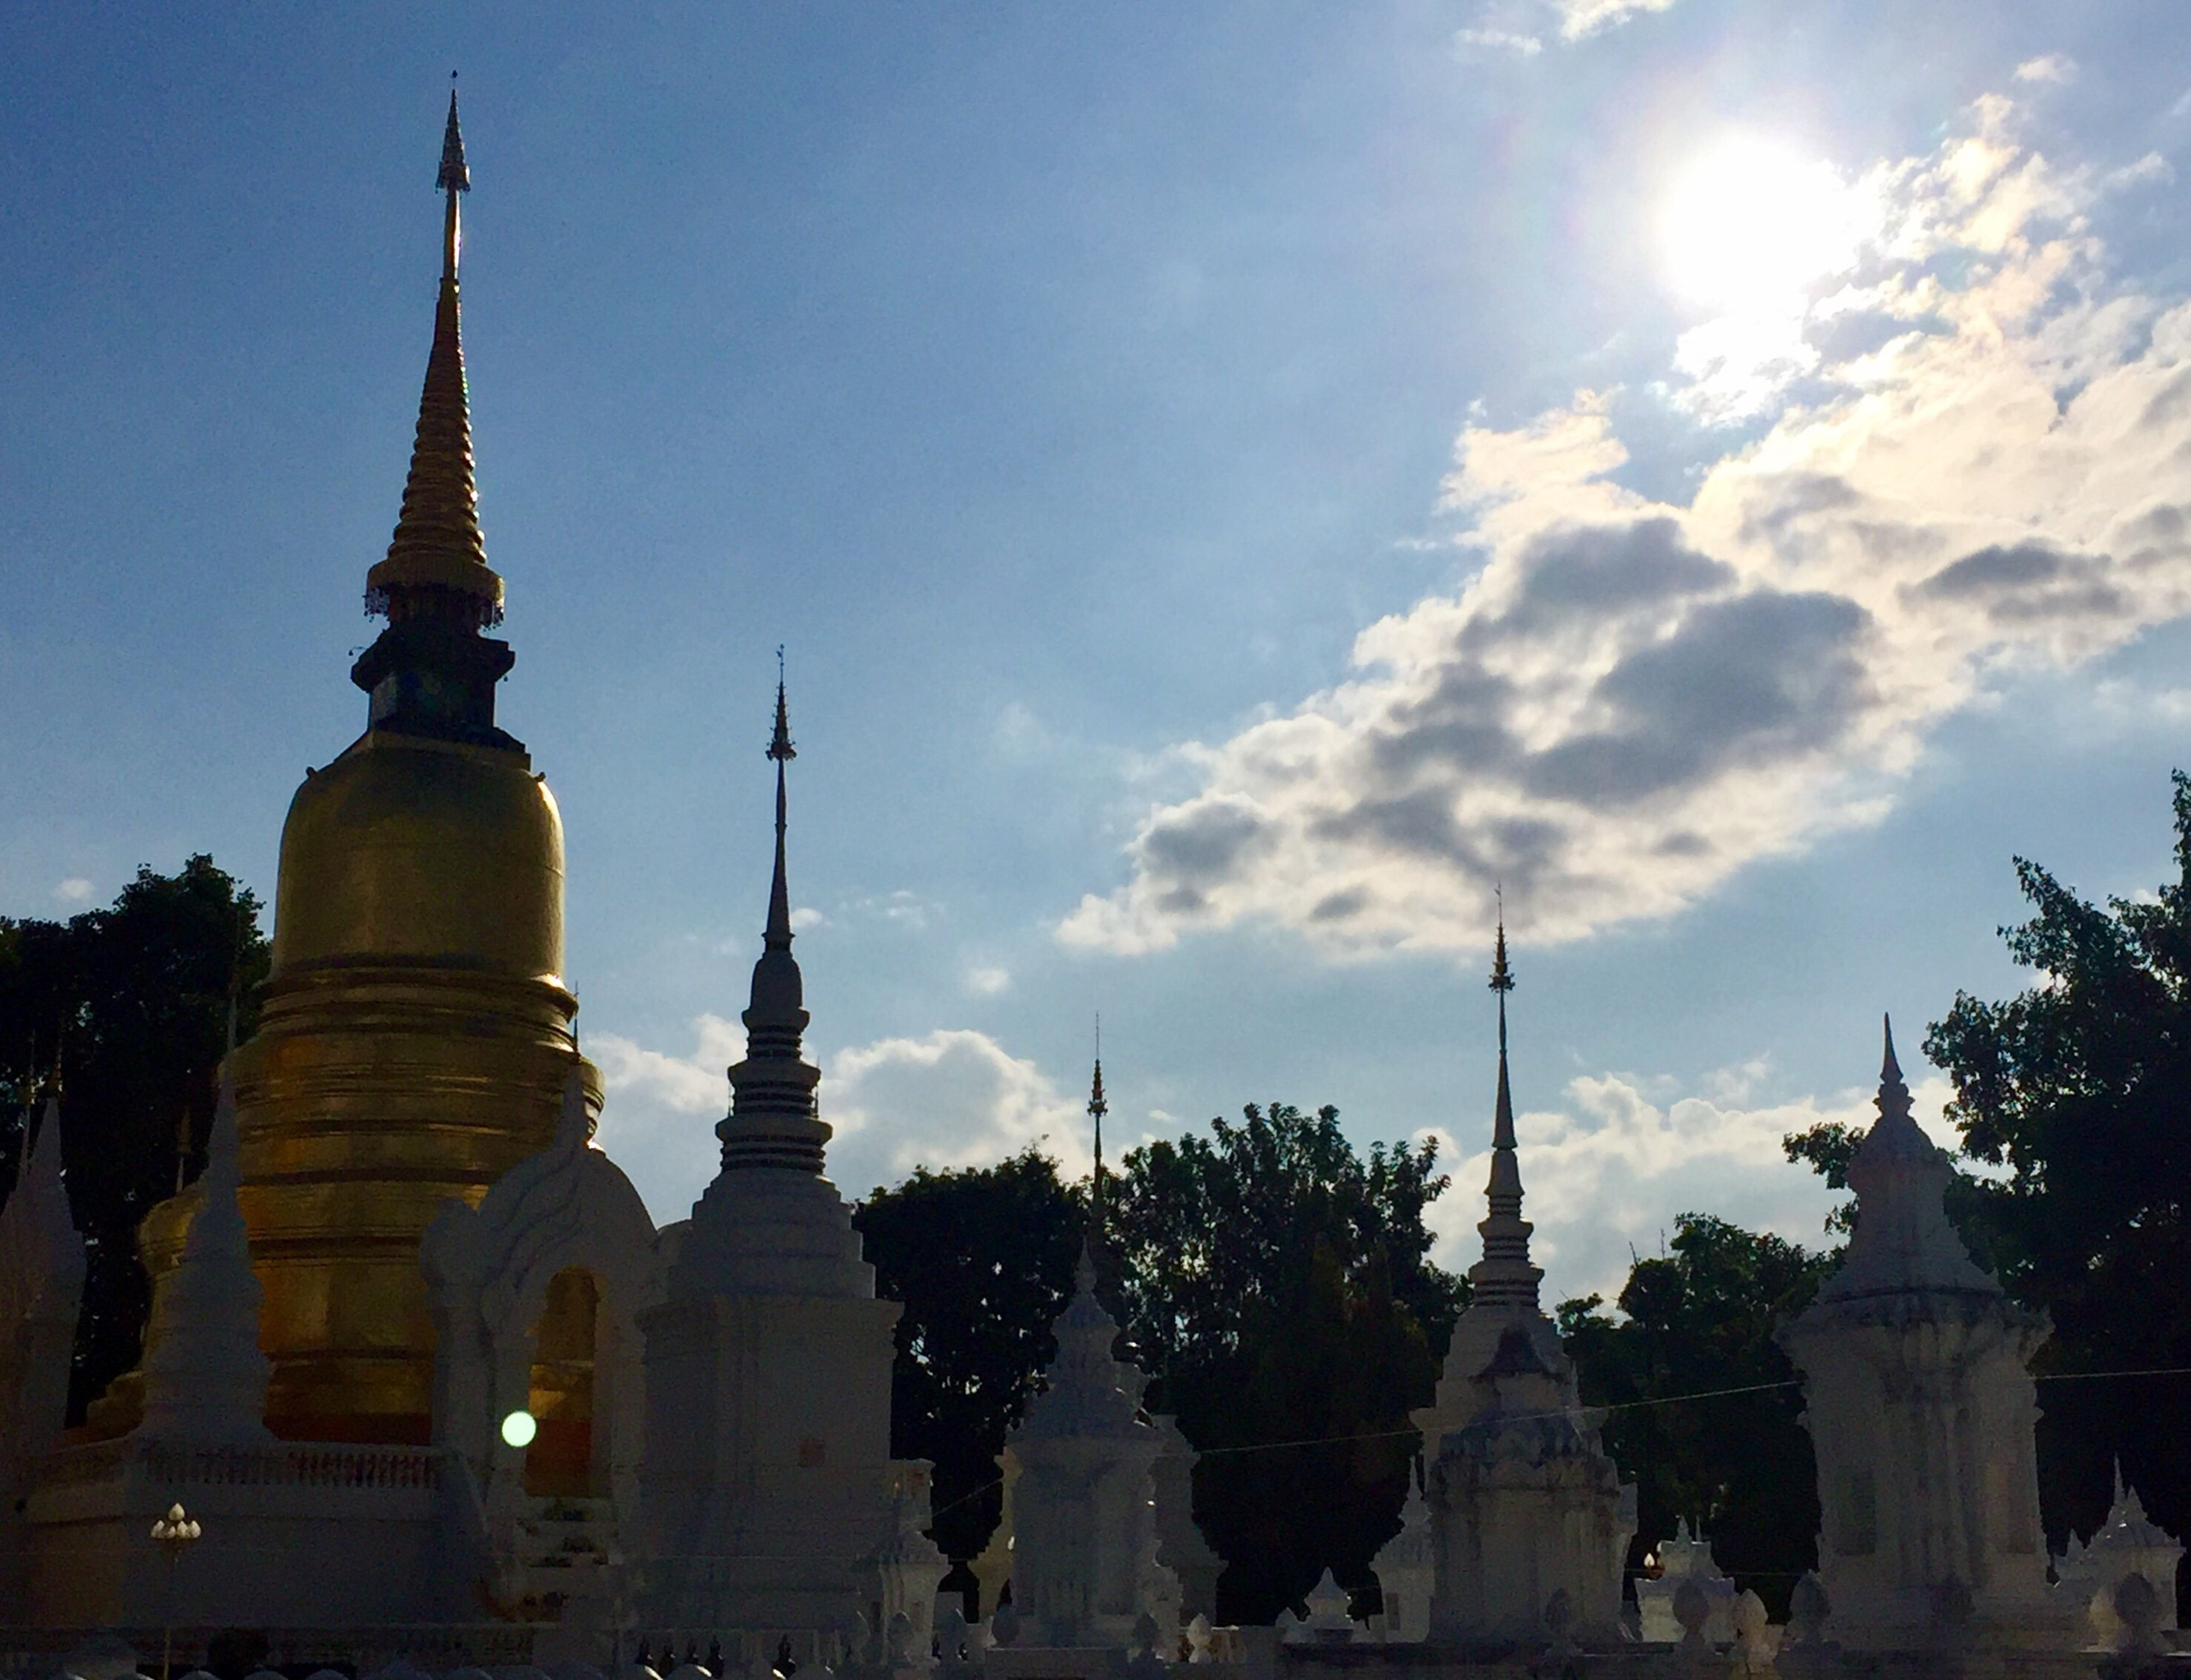 religion, sky, architecture, spirituality, place of worship, gold colored, pagoda, travel destinations, outdoors, built structure, tree, building exterior, no people, tourism, low angle view, city, gold, day